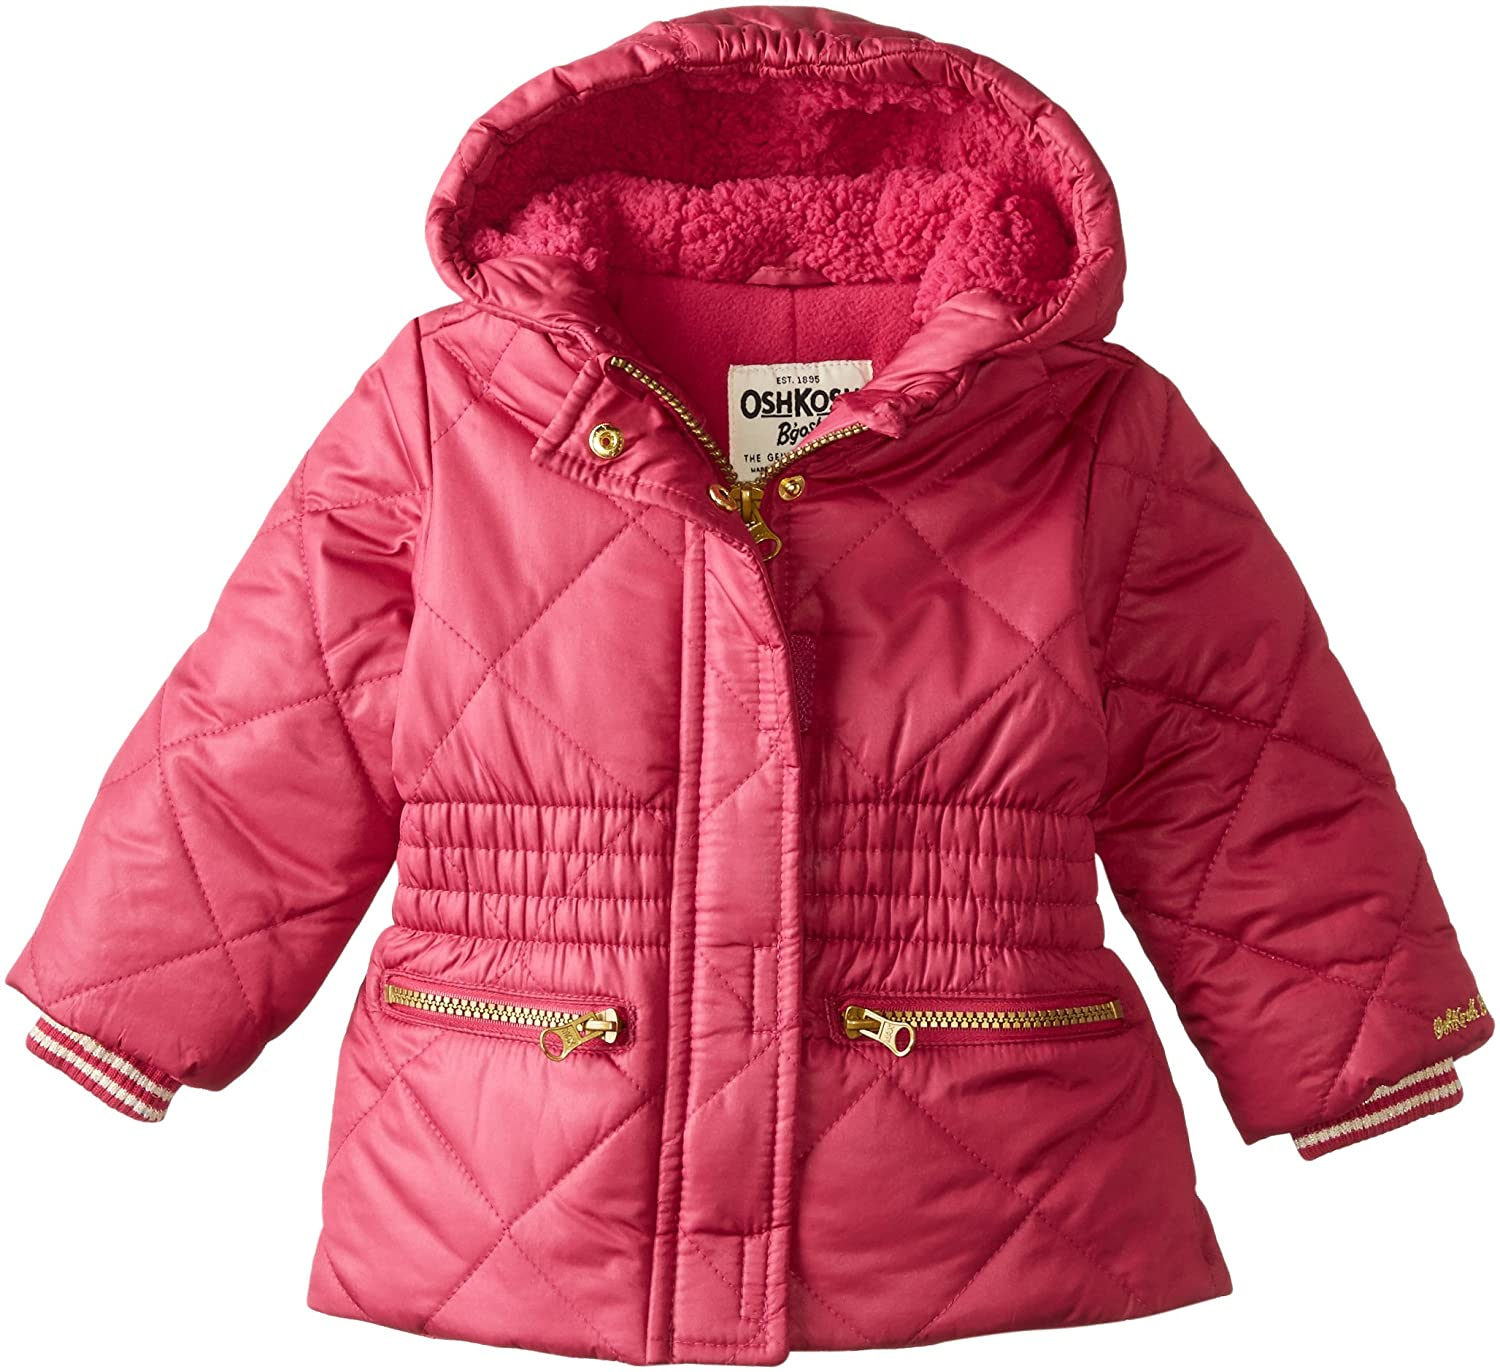 OshKosh Baby-Girls Baby Heavyweight Cinched Waist Jacket Raspberry 18 Months Osh Kosh Baby B215515